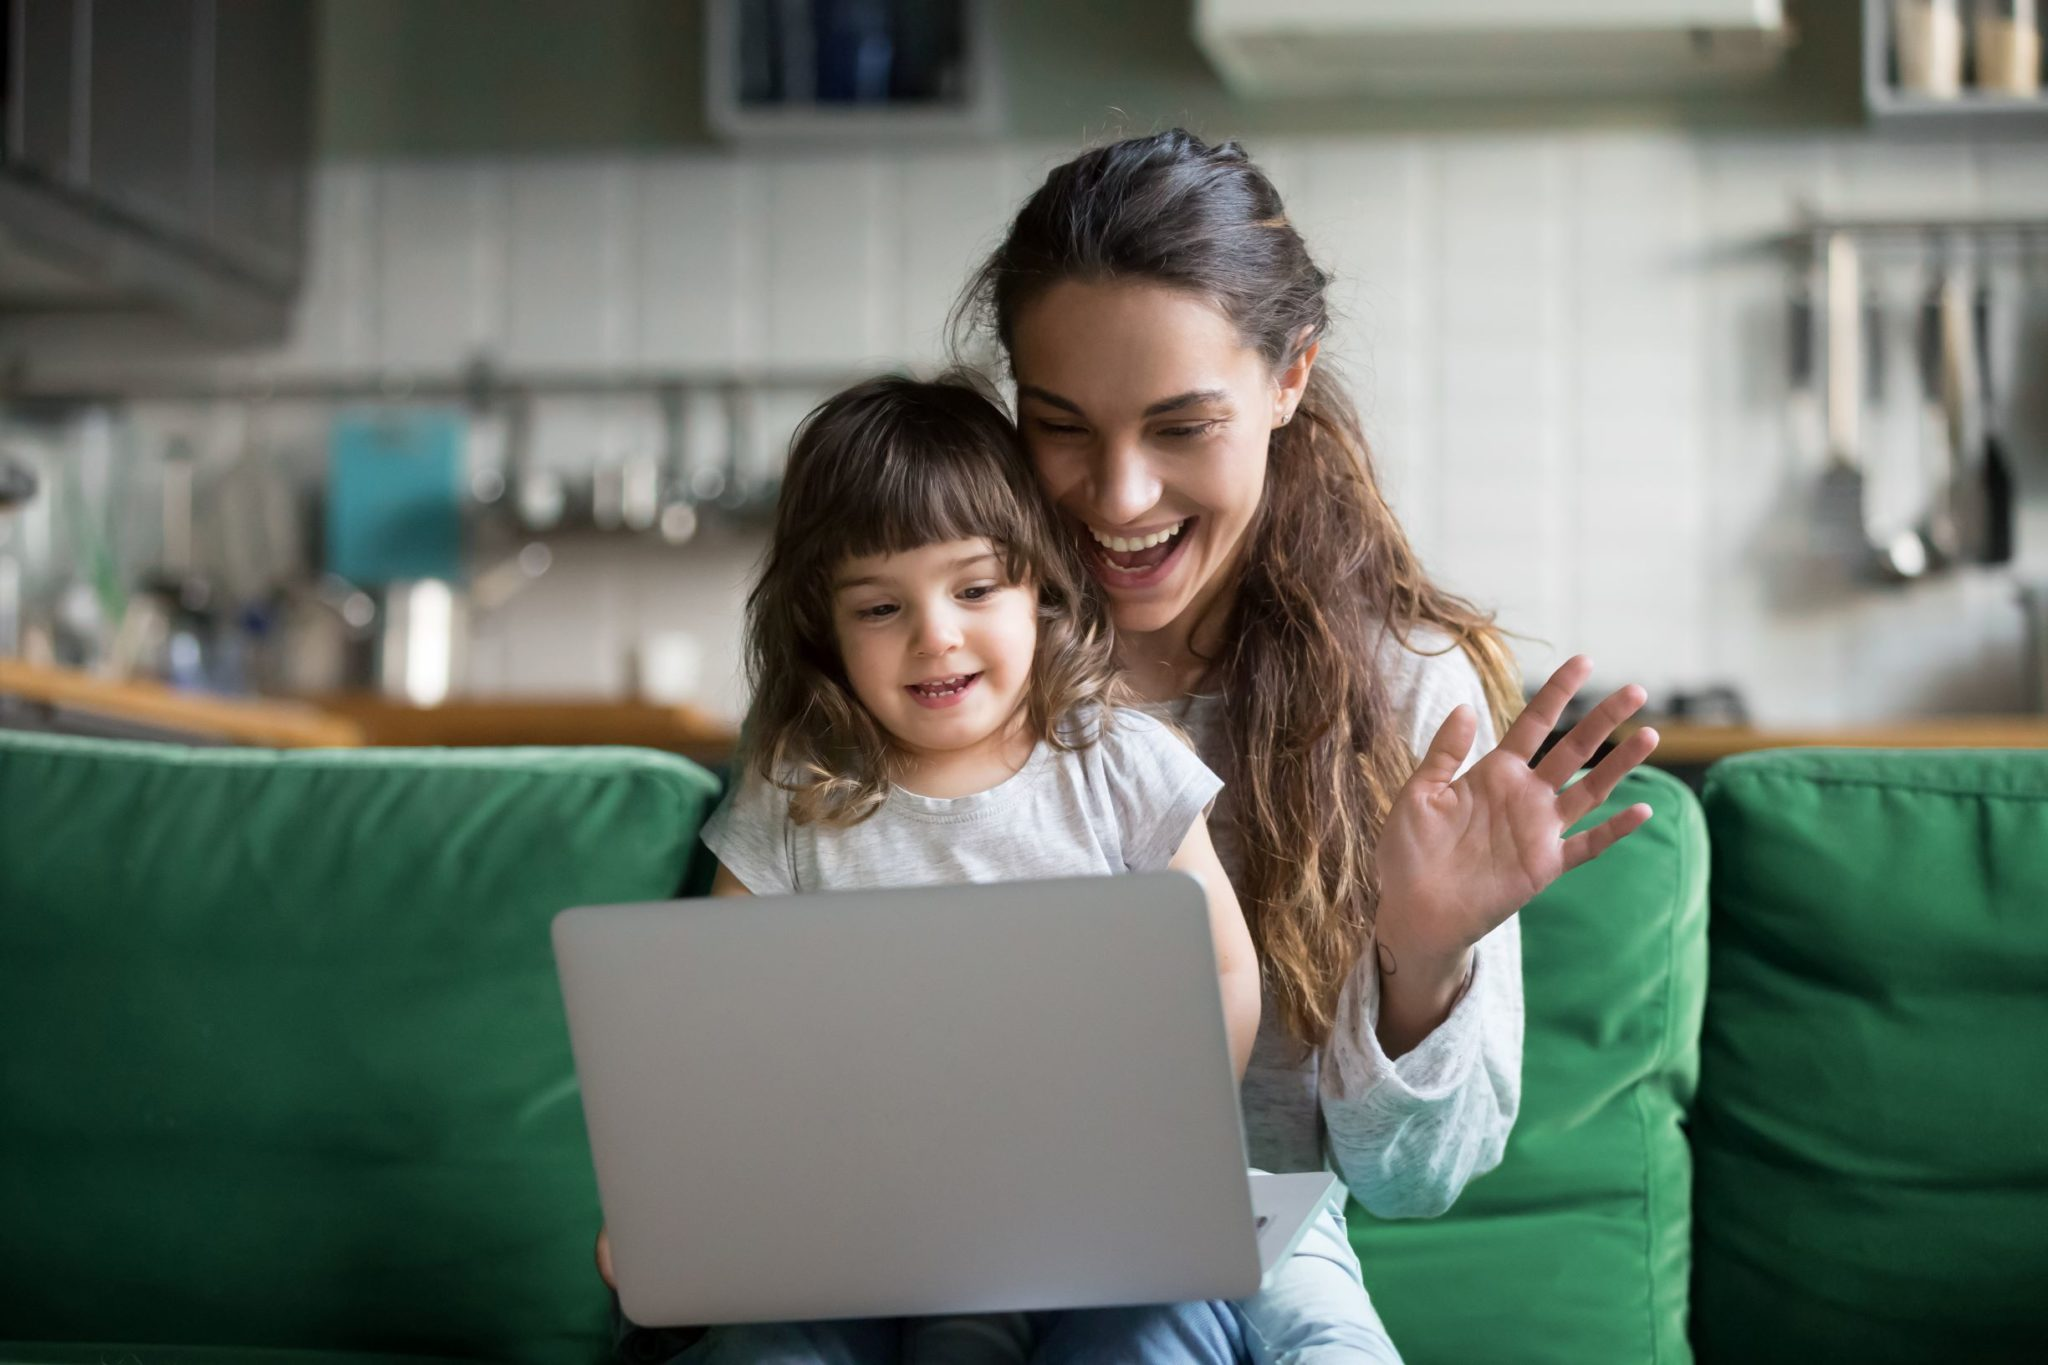 A parent and child happily look at a laptop together.